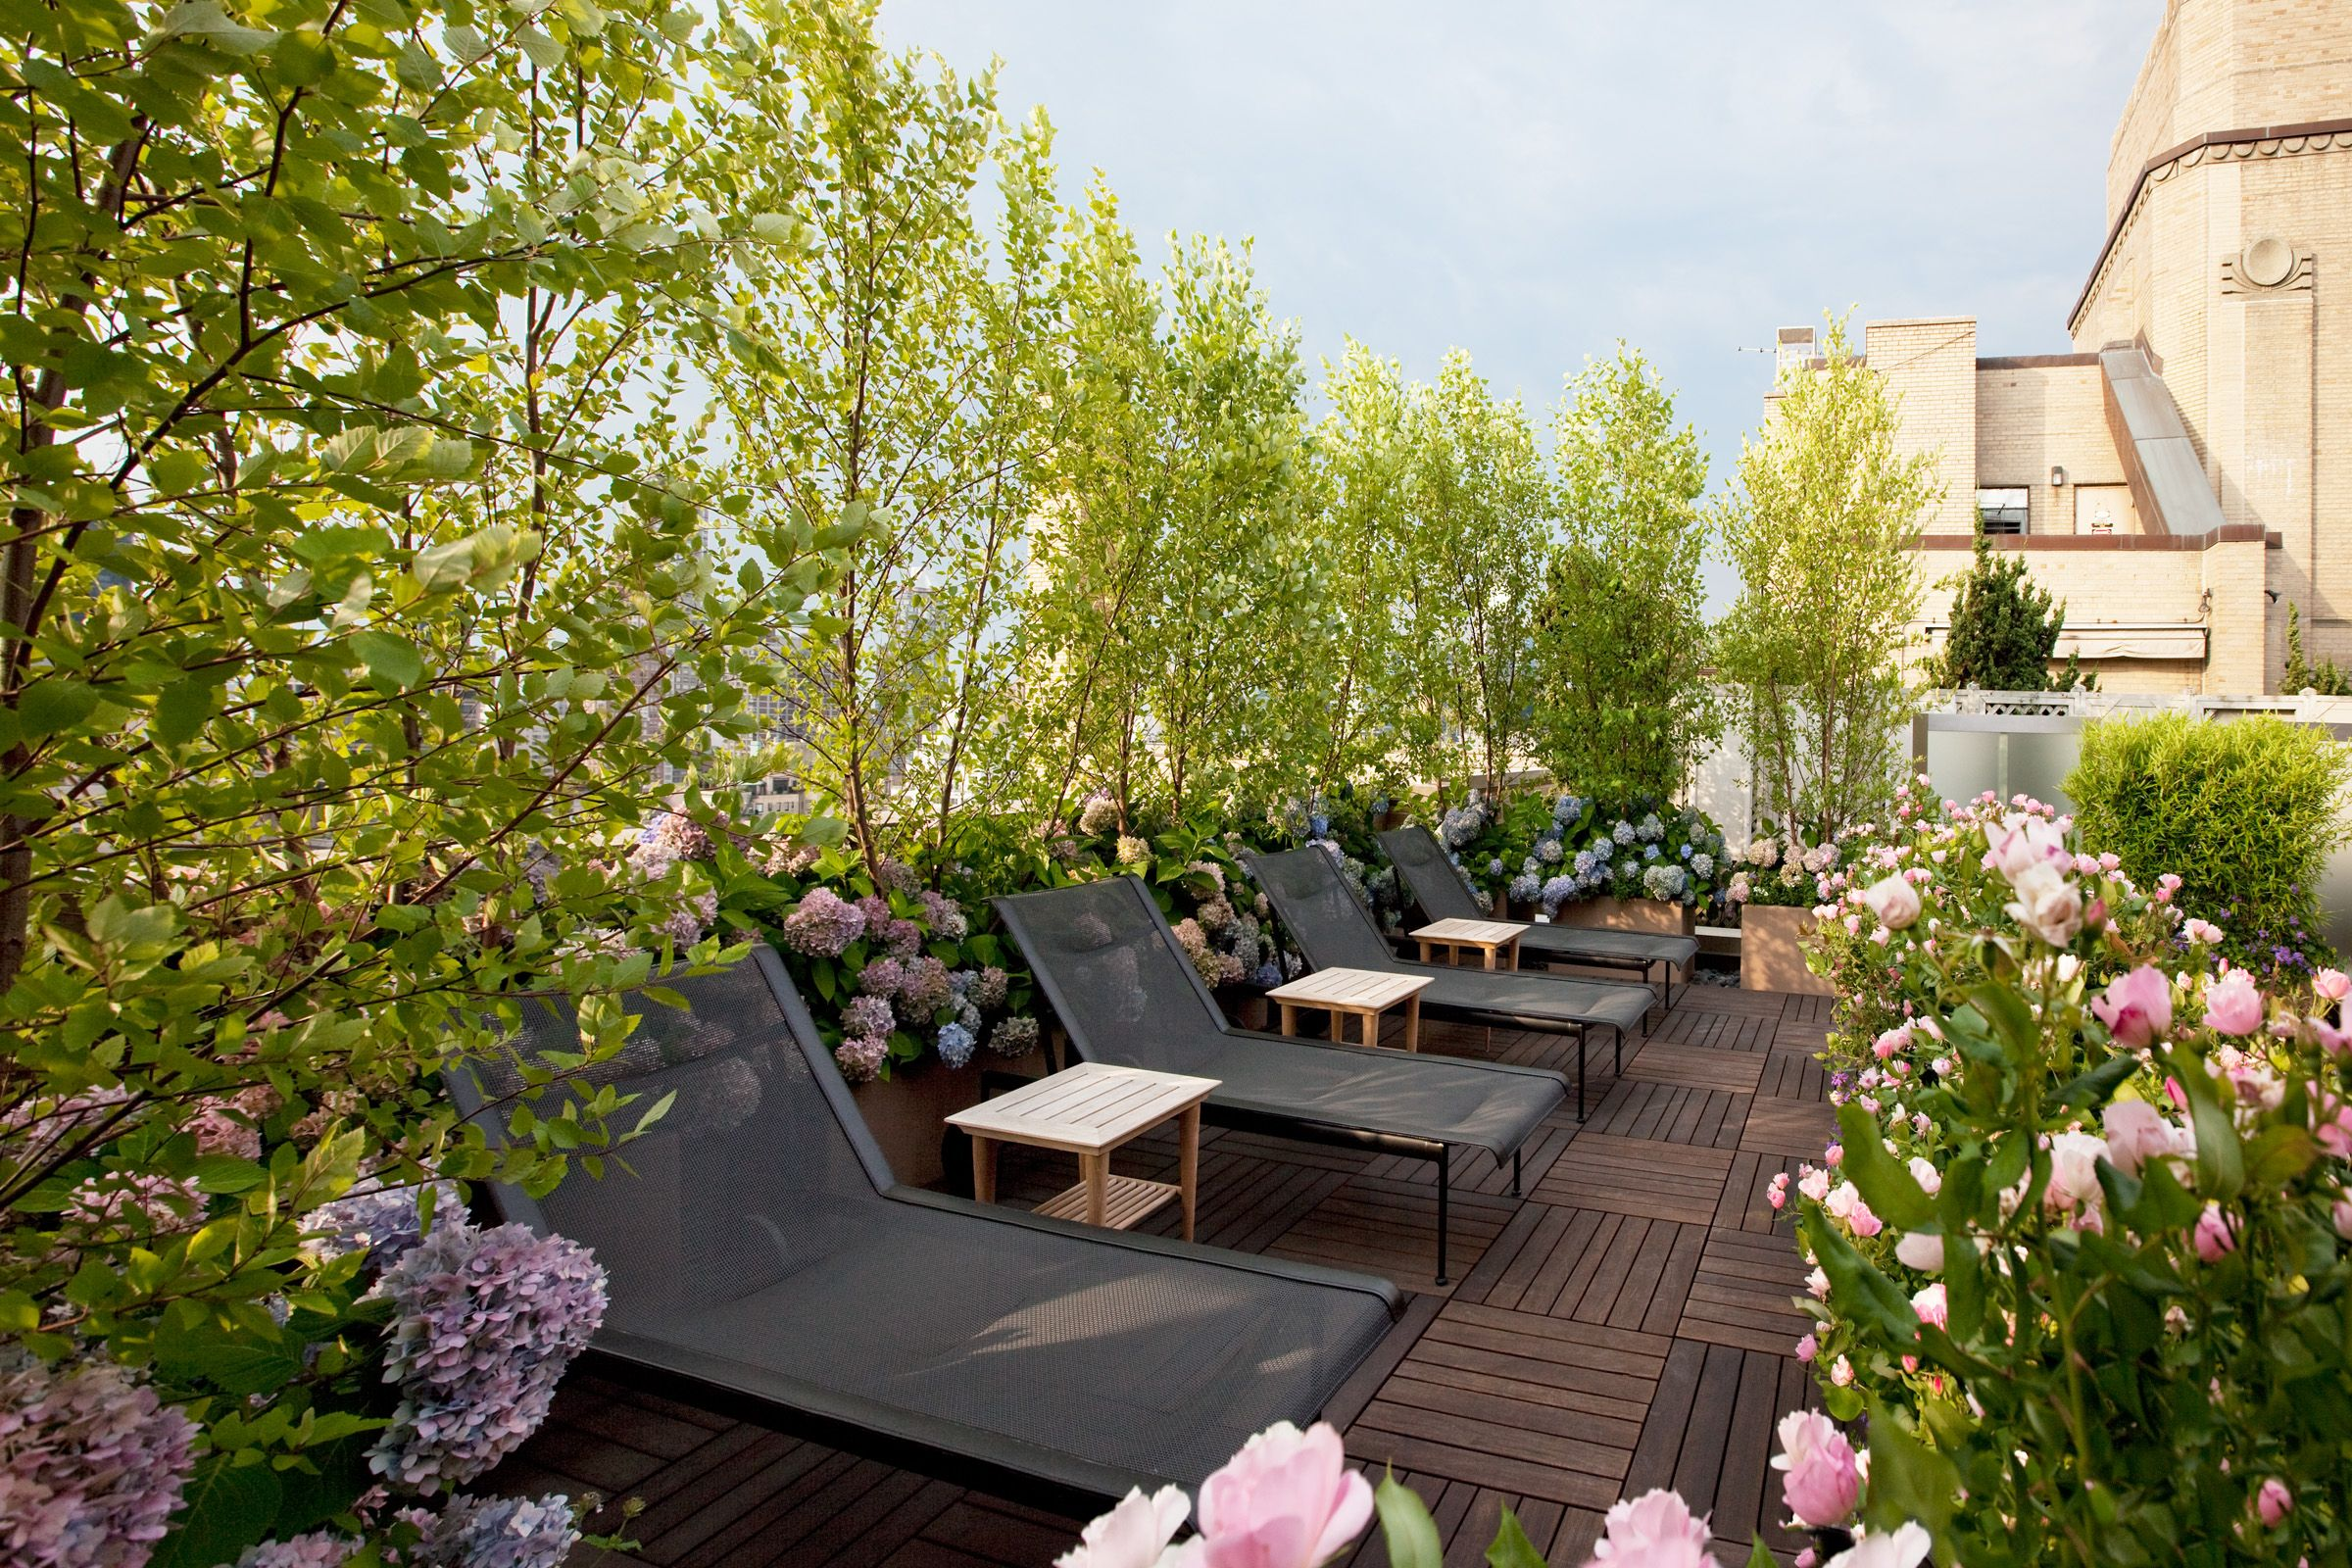 NYC Rooftop. Seating surrounded by flowering hydrangea and roses. Hollander Design.